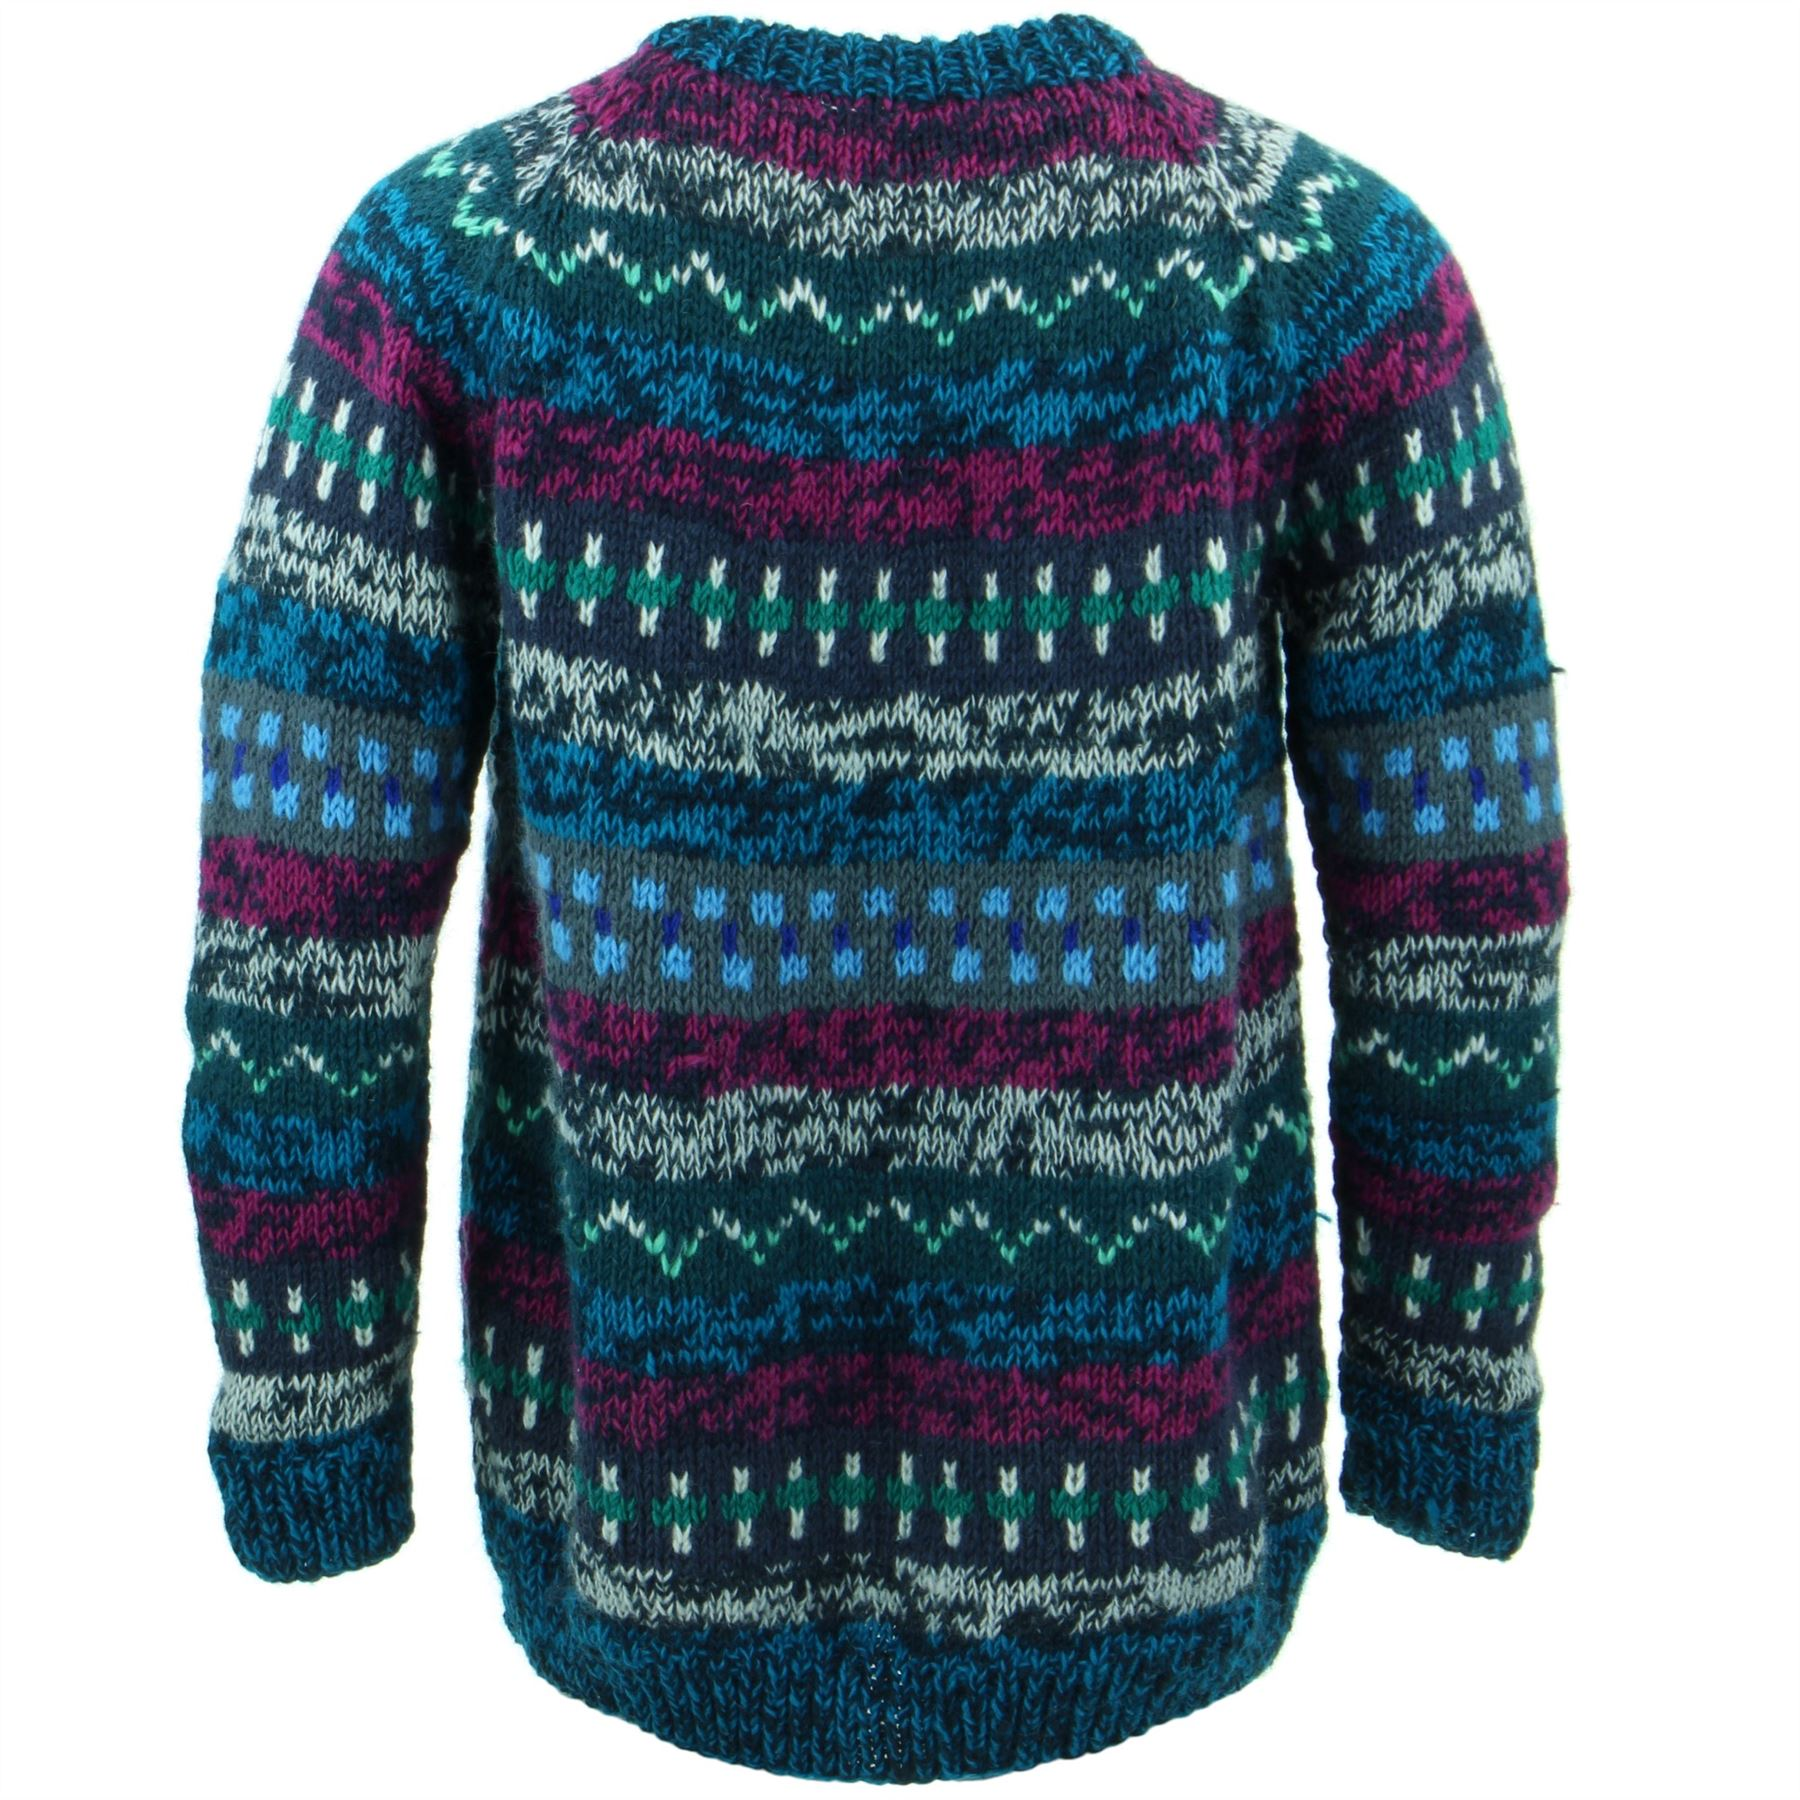 Wool-Jumper-ABSTRACT-Chunky-Knit-Knitted-Sweater-Pullover-Raglan-Crew-Neck thumbnail 3